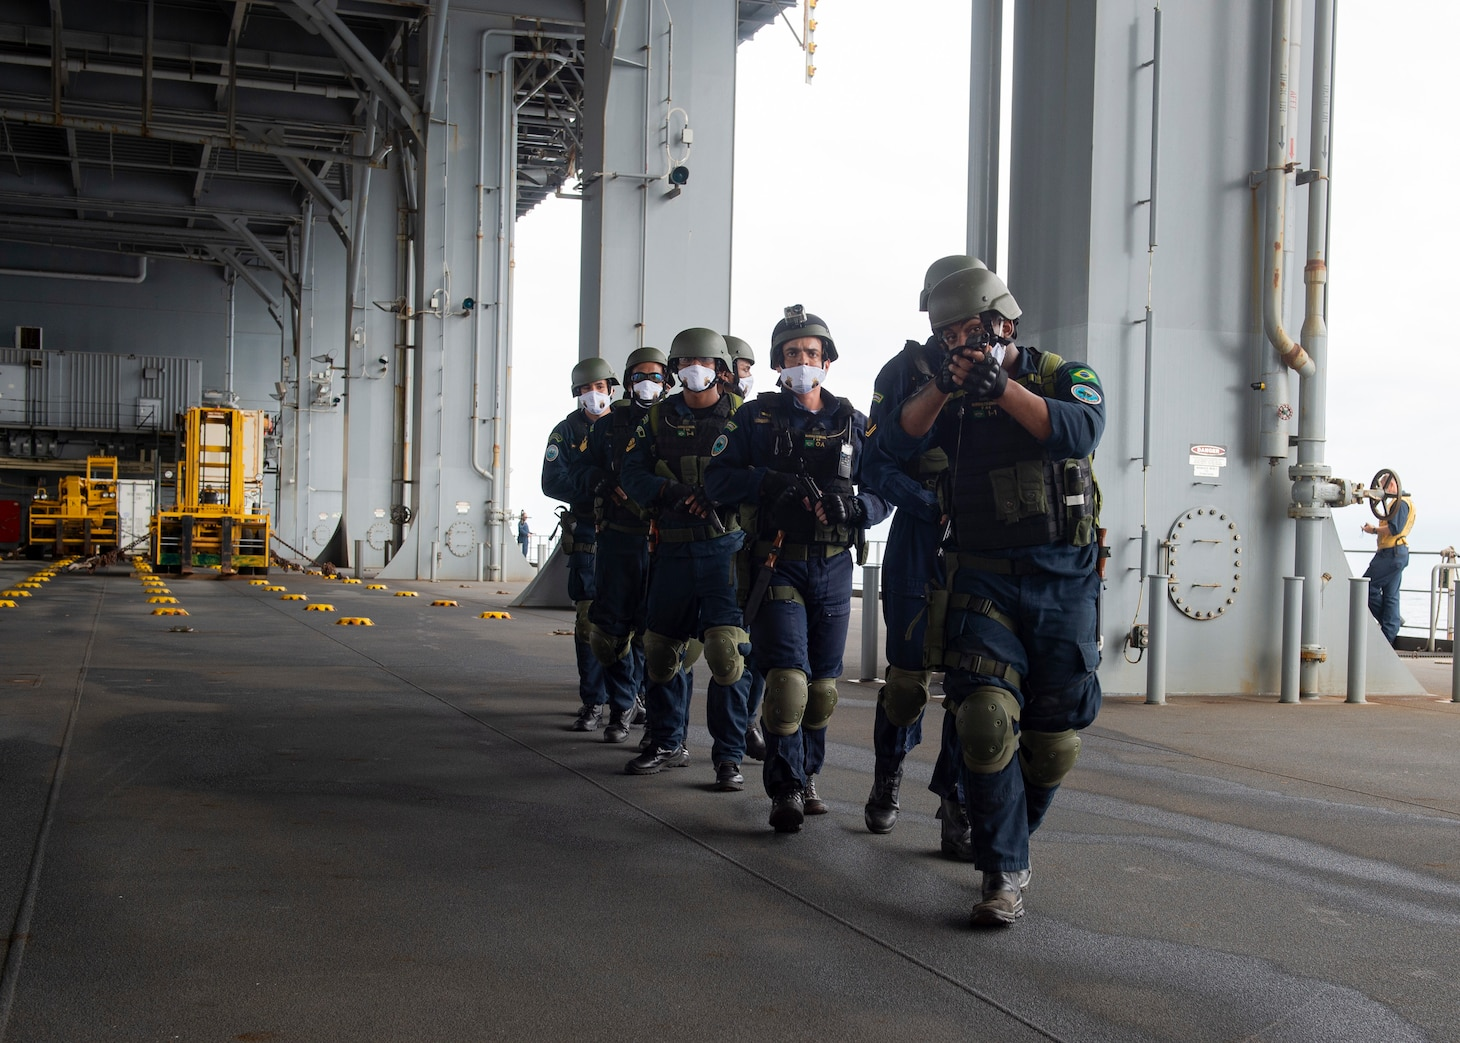 """Brazilian Navy Sailors perform a visit, board, search, and seizure drill aboard the Expeditionary Sea Base USS Hershel """"Woody"""" Williams (ESB 4), Aug. 22, 2021. Hershel """"Woody"""" Williams is conducting a maritime security capability exercise to build on its existing partnership with the Brazilian Navy and joint interoperability operations with allies and partners during a scheduled deployment in the U.S. Sixth Fleet area of operations in support of U.S. national interests and security in Europe and Africa."""